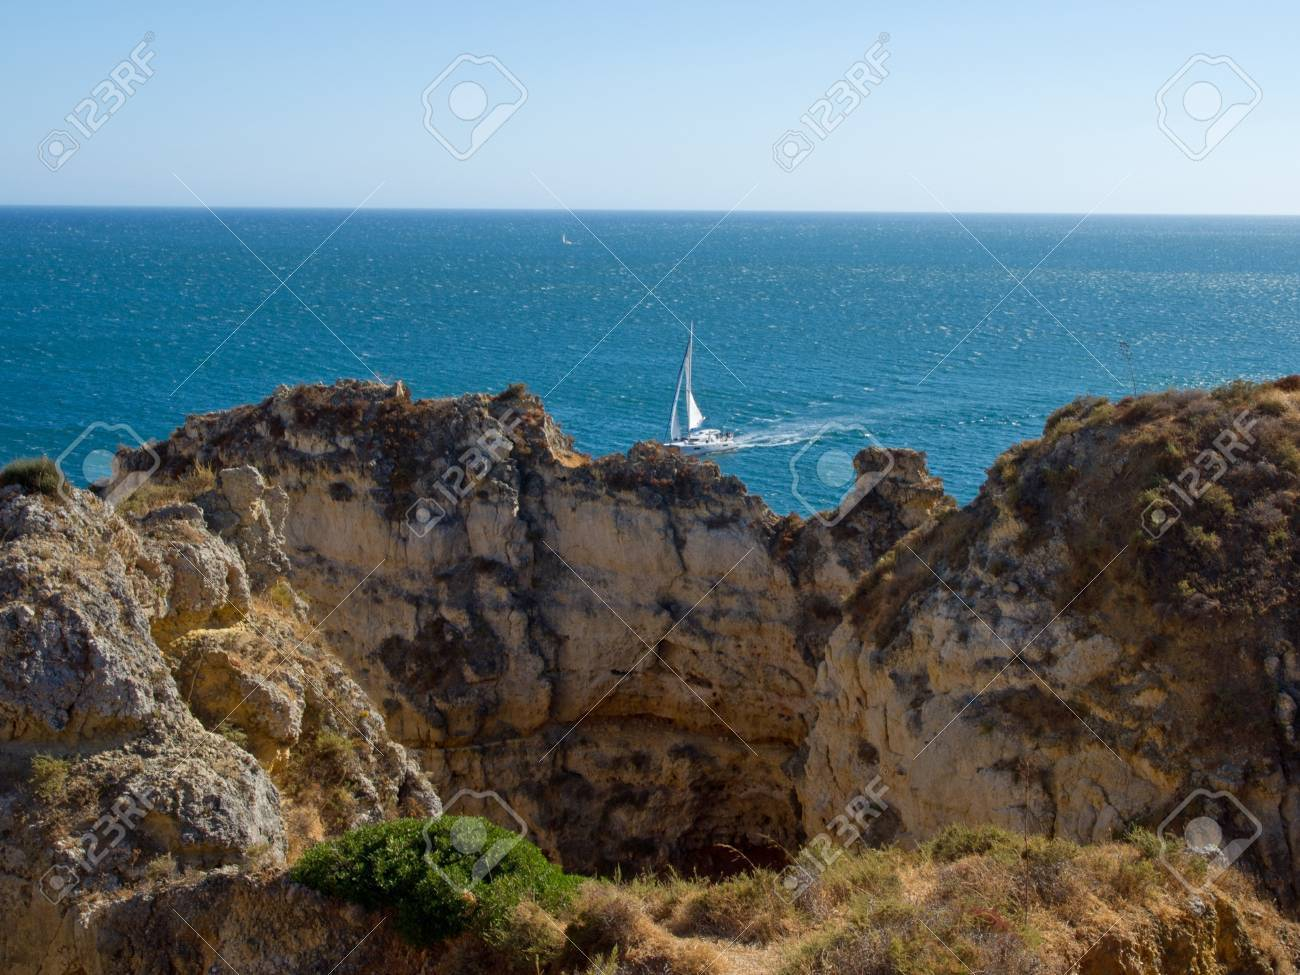 Ponta da Piedade, Natural formation in Algarve�s coast near Lagos town, Portugal Stock Photo - 21699062